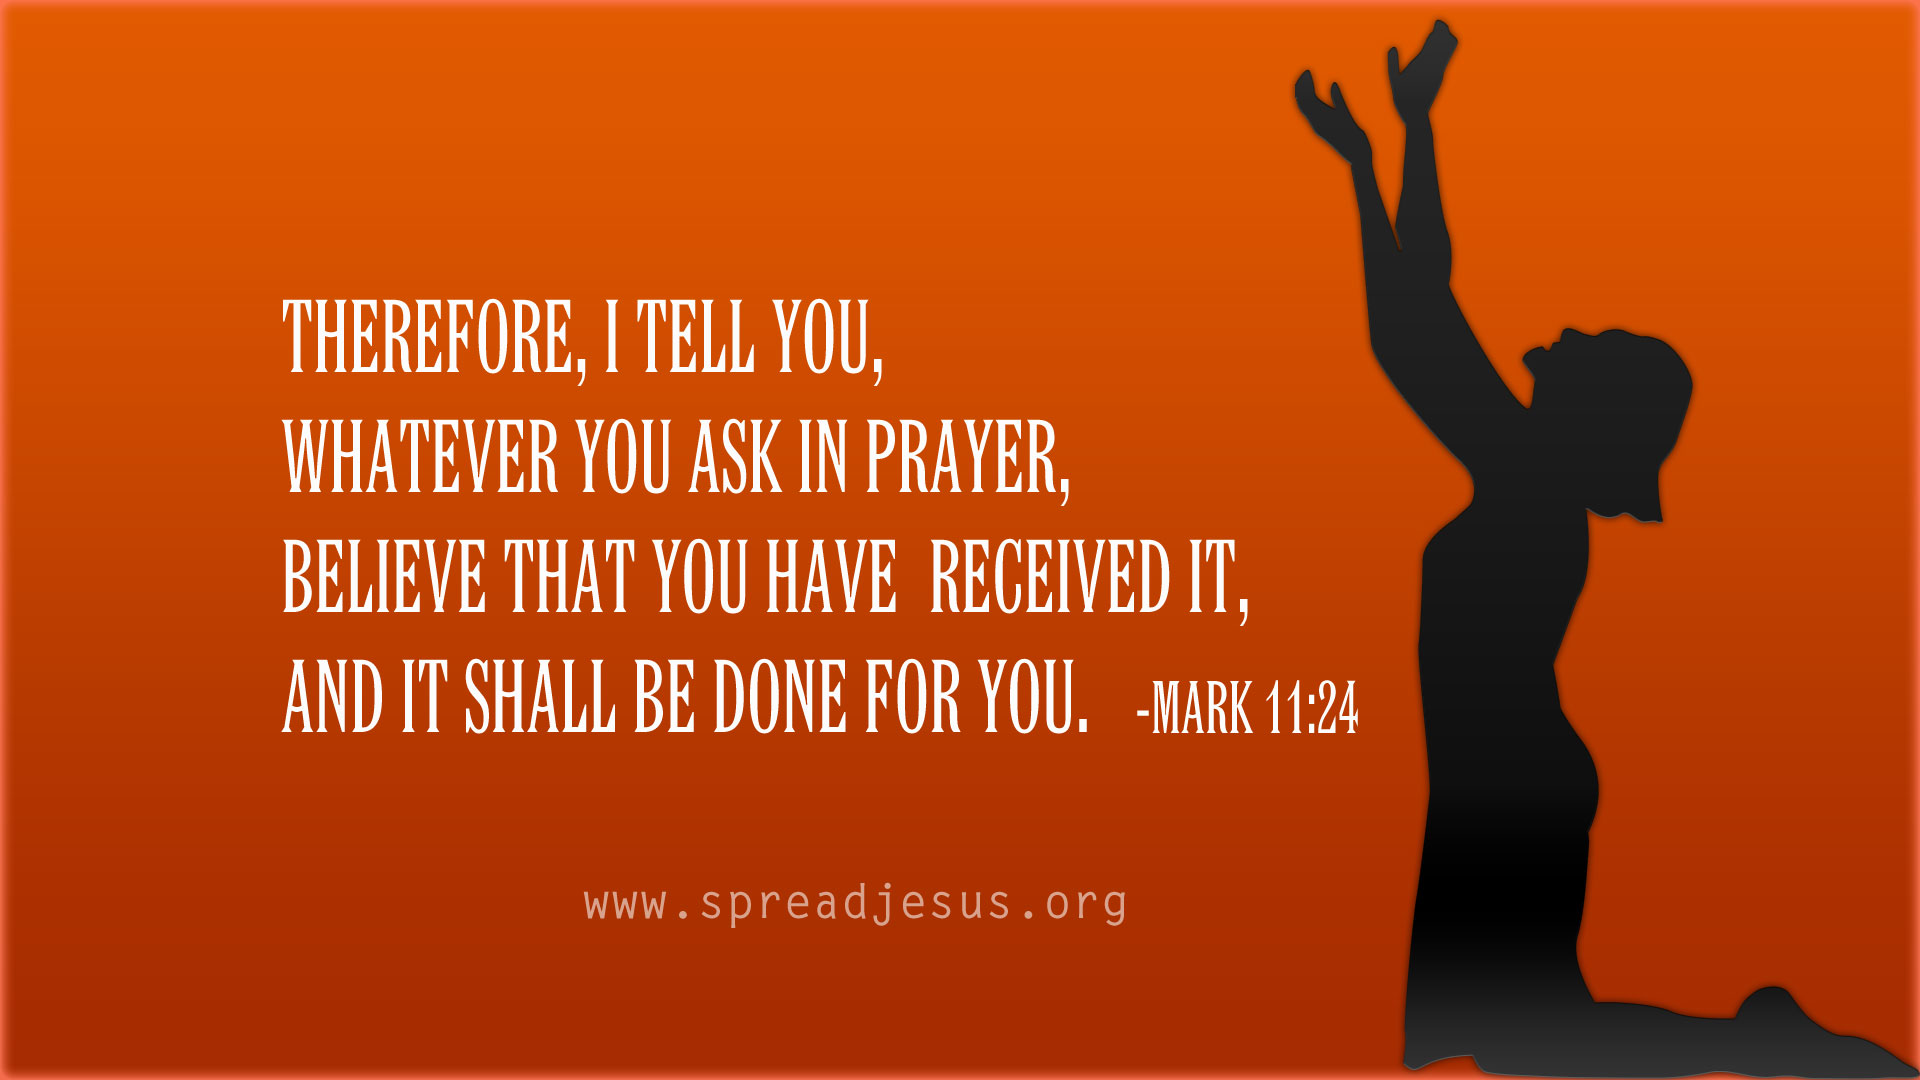 Whatever you ask in prayer:Bible Quotations:Word Of GOD